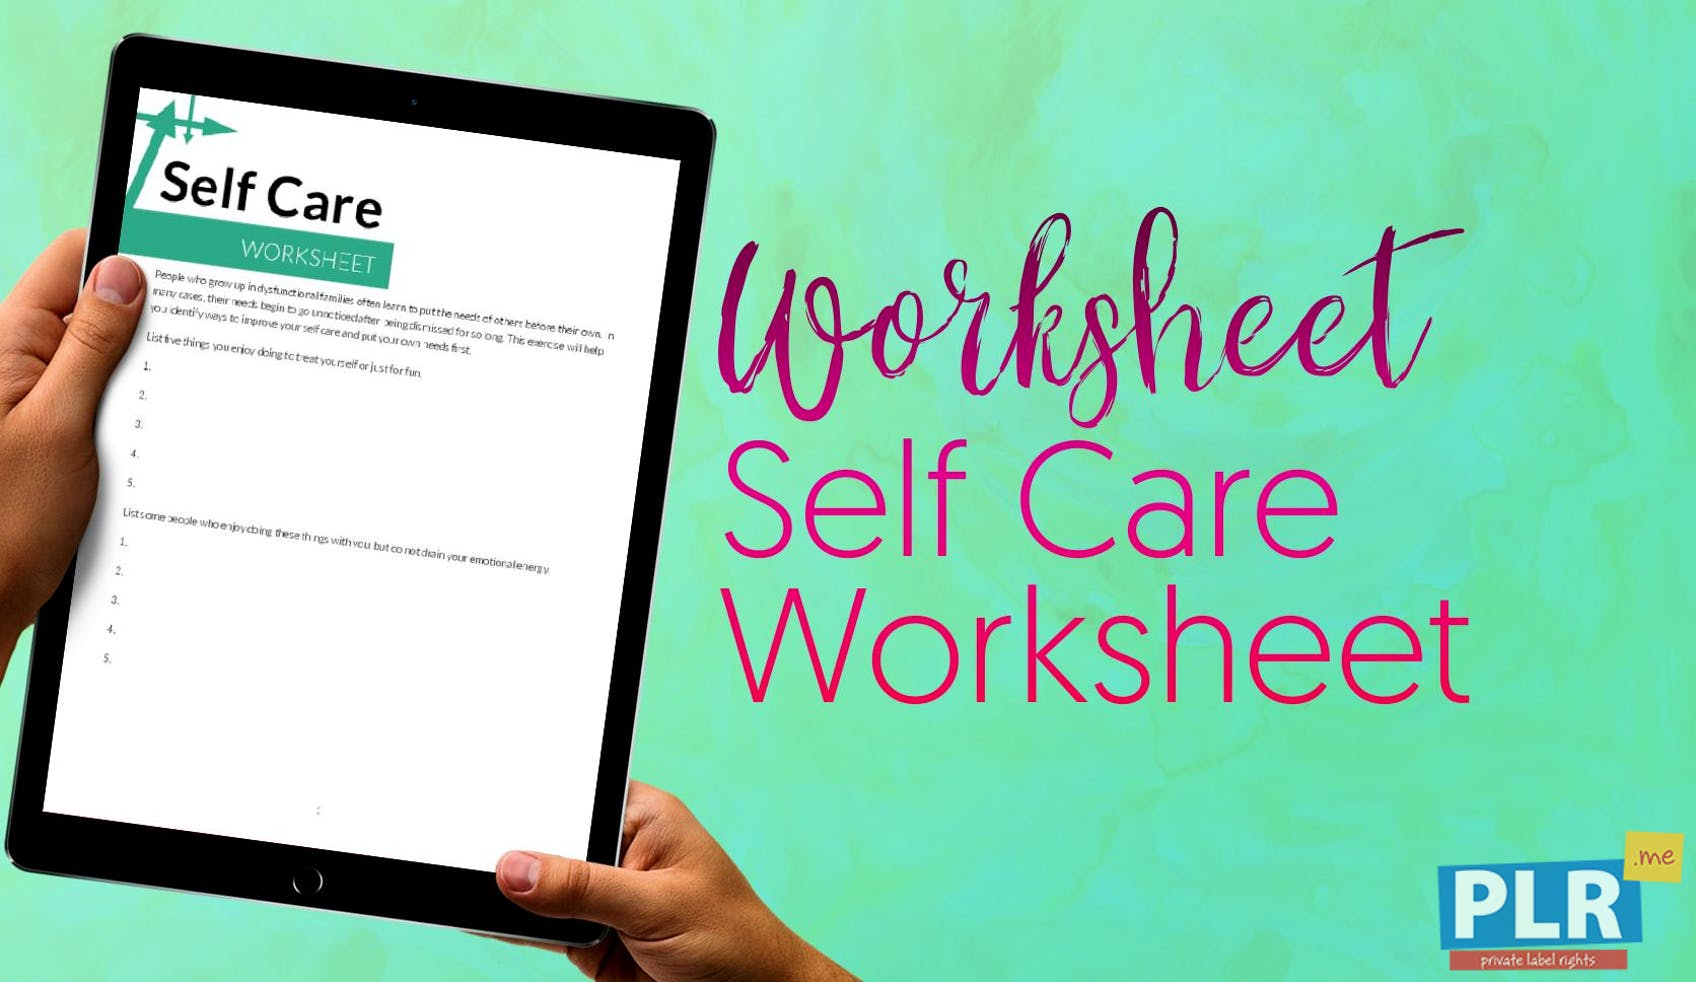 PLR Worksheets - Self Care Worksheet - PLR.me